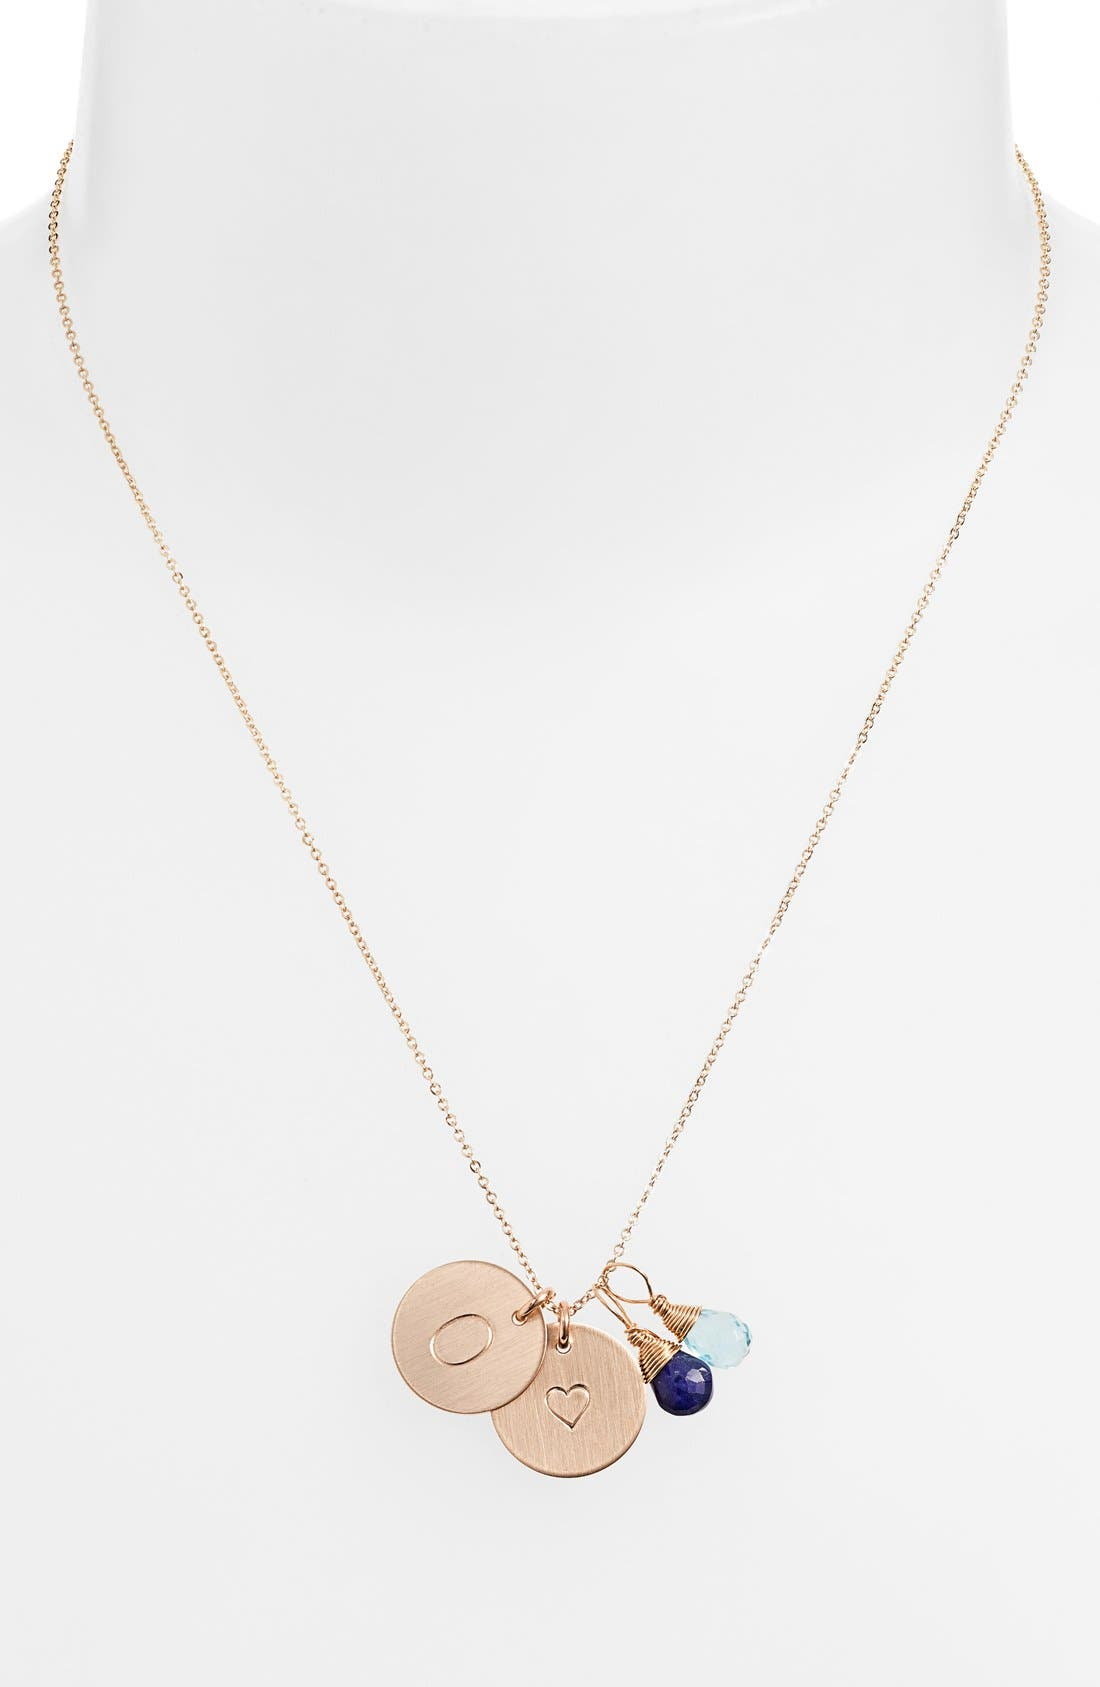 Blue Quartz Initial & Heart 14k-Gold Fill Disc Necklace,                             Alternate thumbnail 2, color,                             ROYAL BLUE AND OCEAN BLUE O